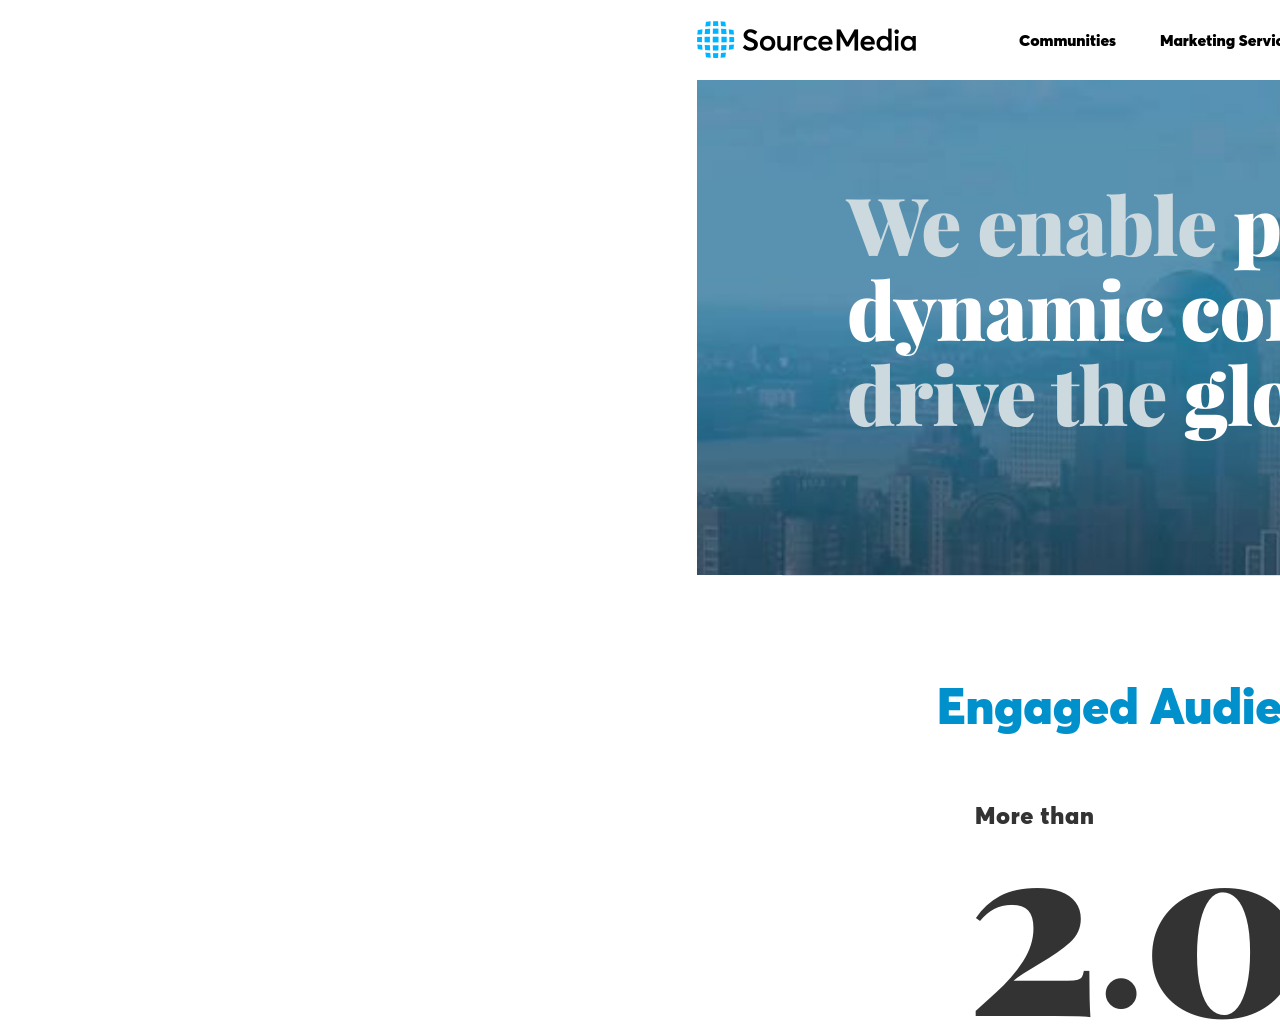 SourceMedia-Advertising-Reviews-Pricing